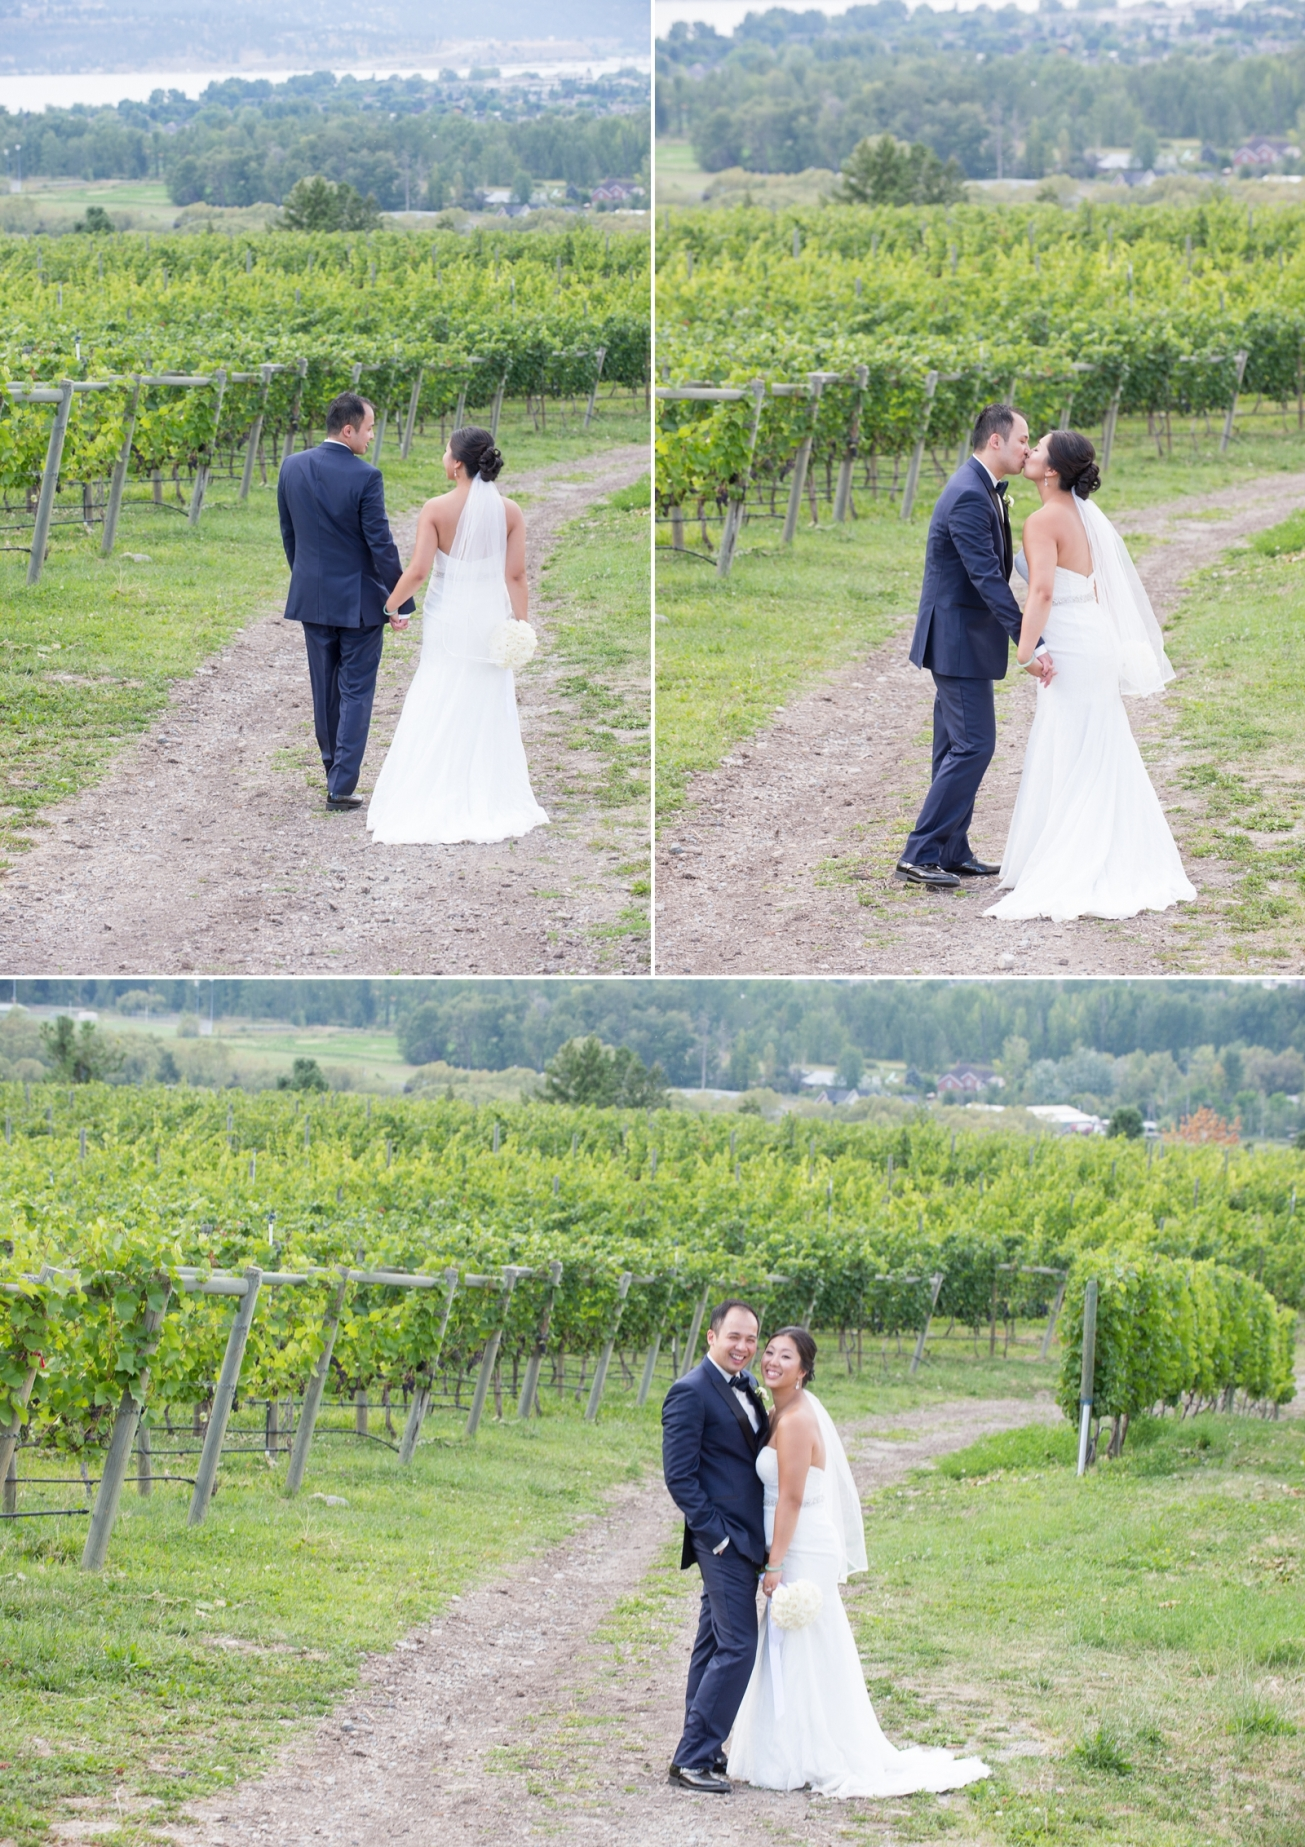 Tantalus Winery Wedding - Kelowna Okanagan - Suzanne le Stage 16